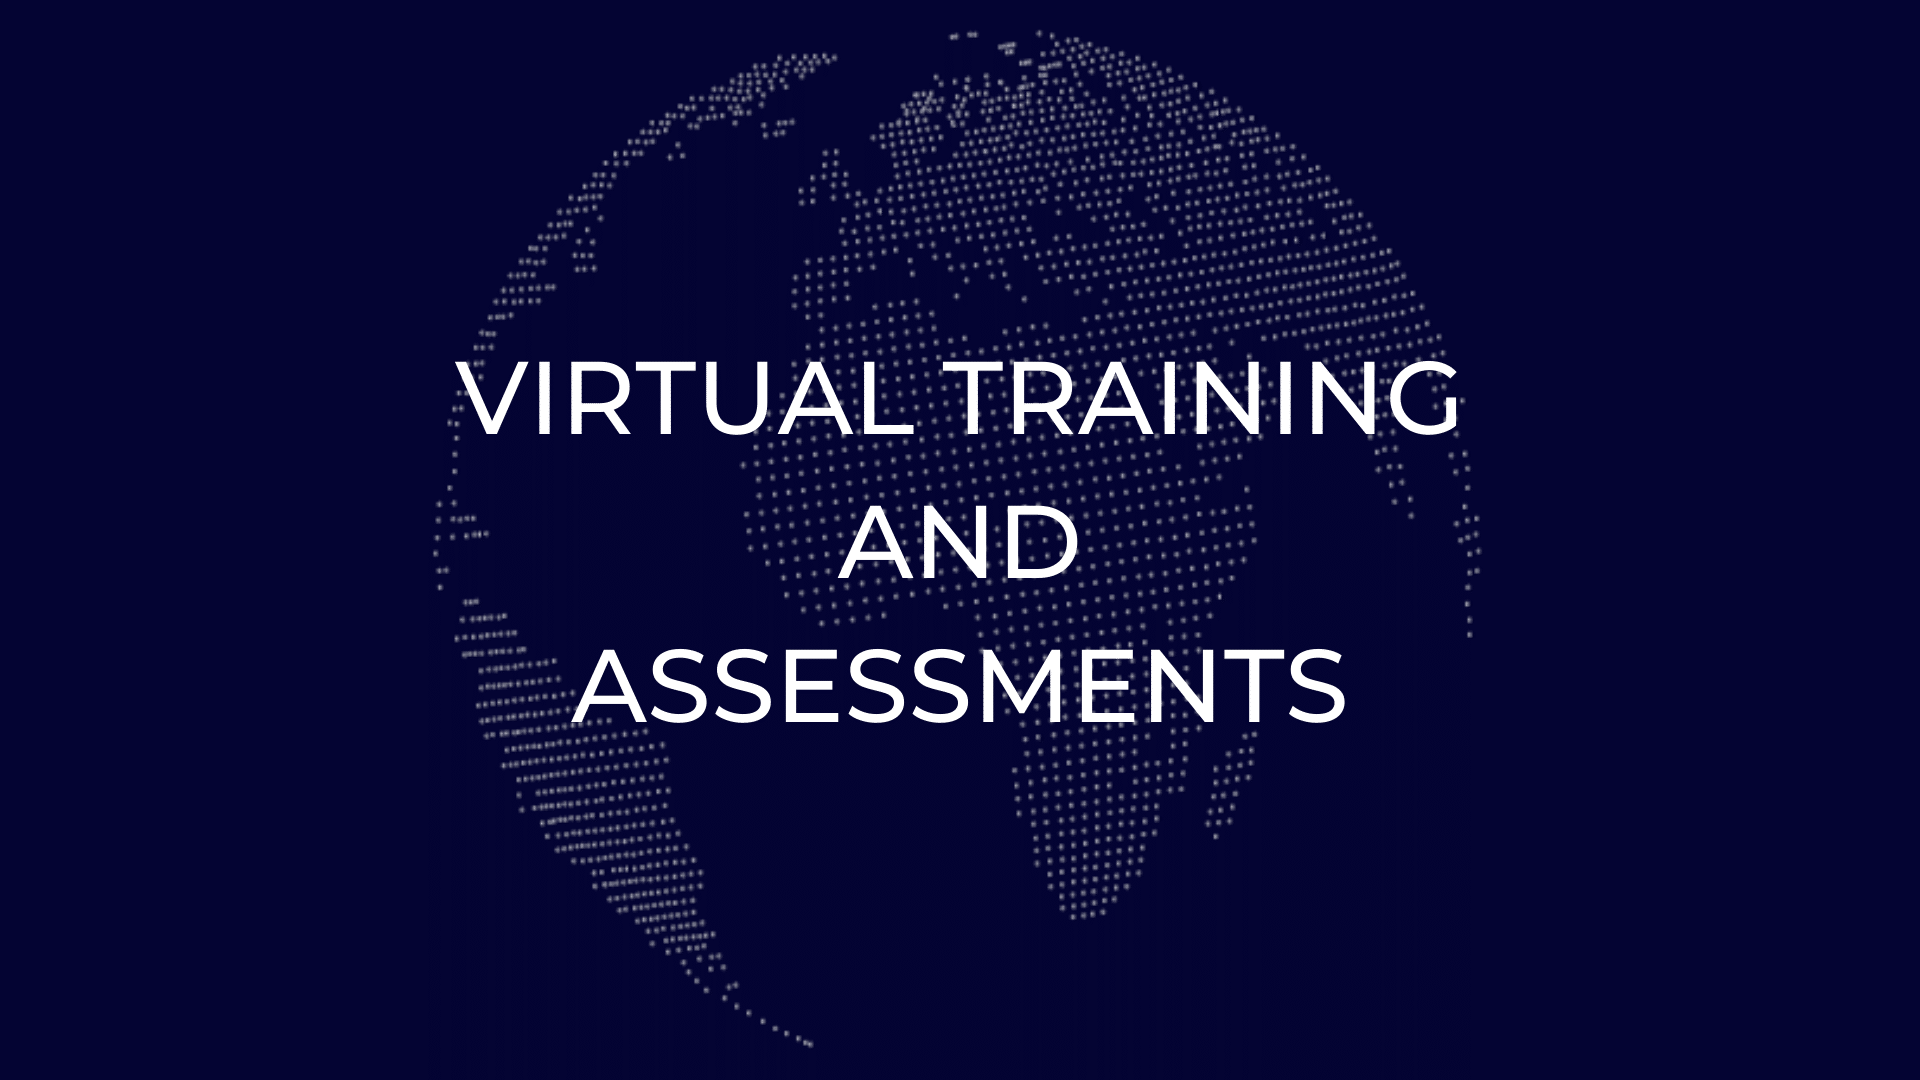 Virtual Training and Assessments